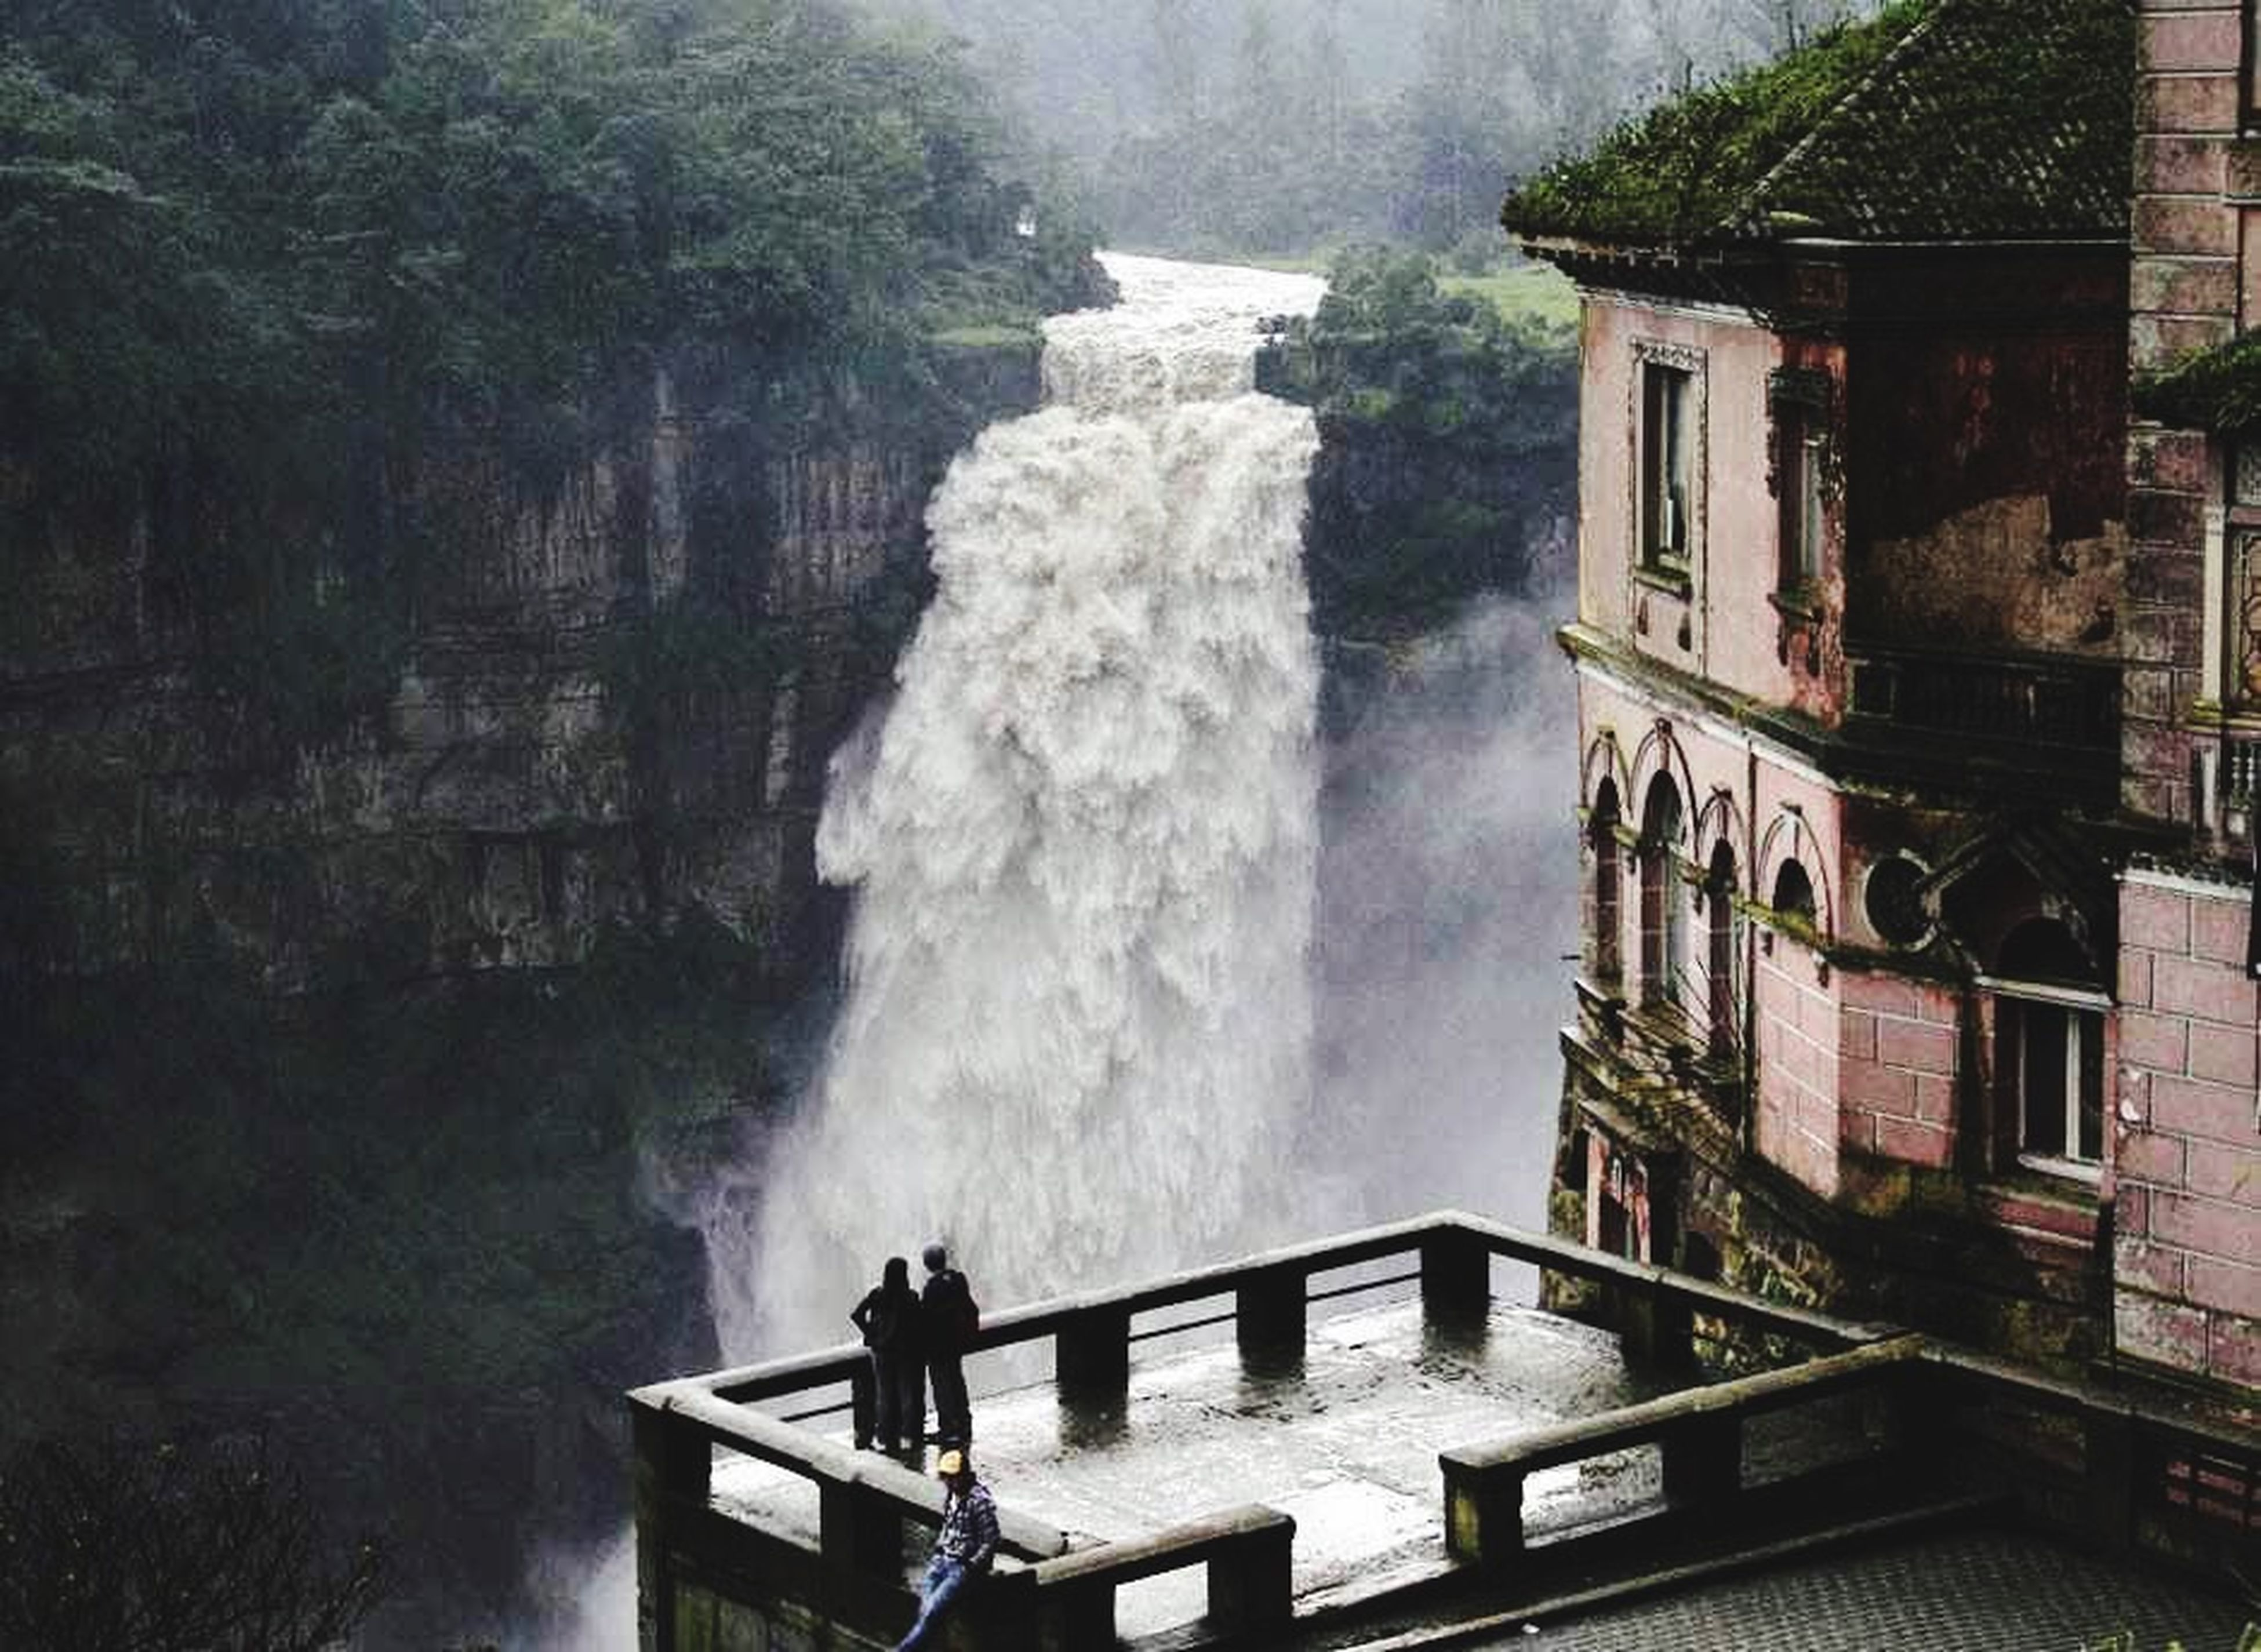 water, built structure, building exterior, architecture, men, lifestyles, leisure activity, person, waterfall, travel destinations, fountain, motion, day, tourism, flowing water, rear view, travel, famous place